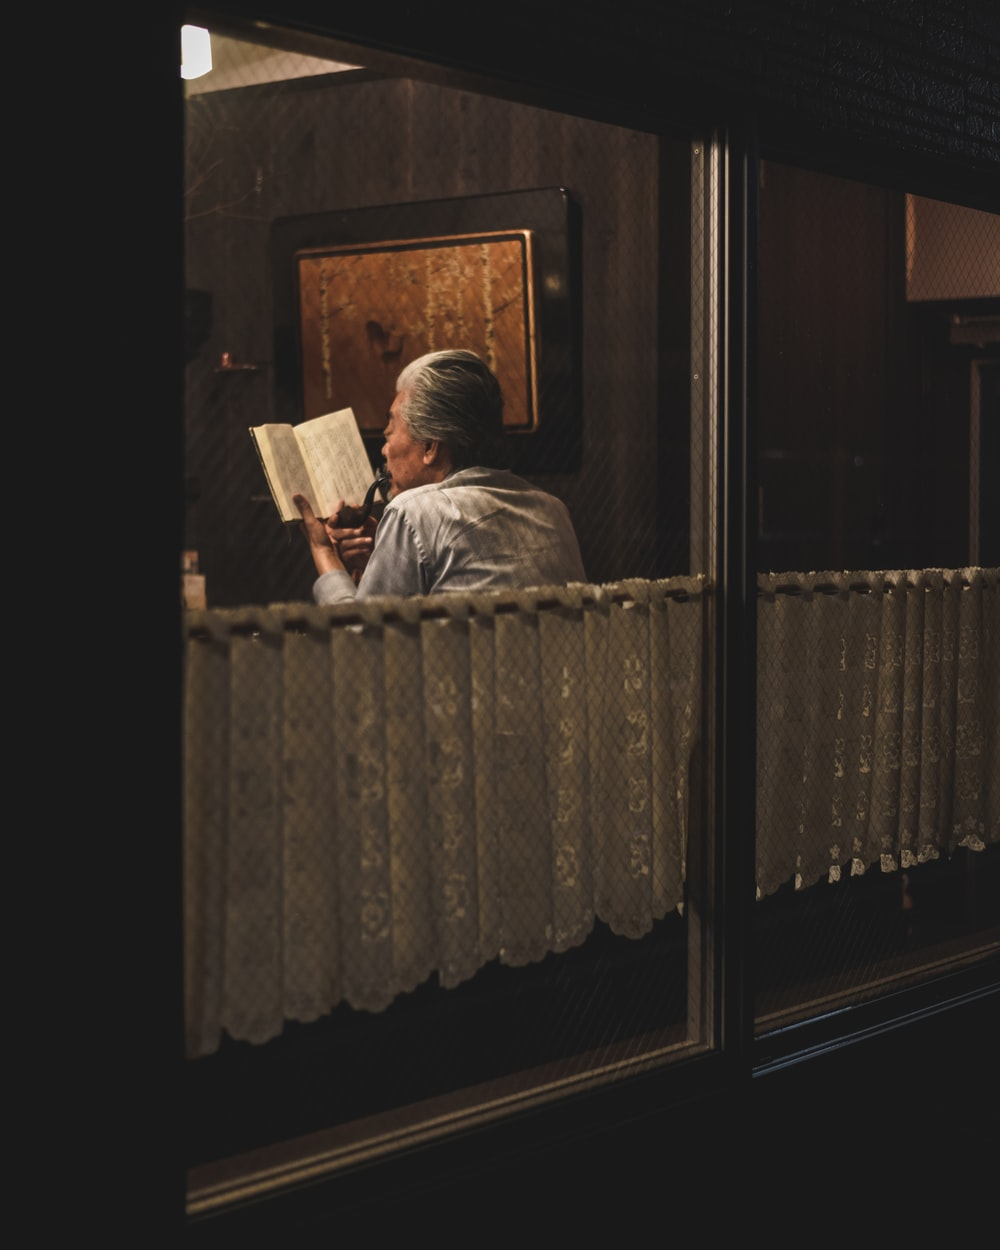 man reading book sitting on chair